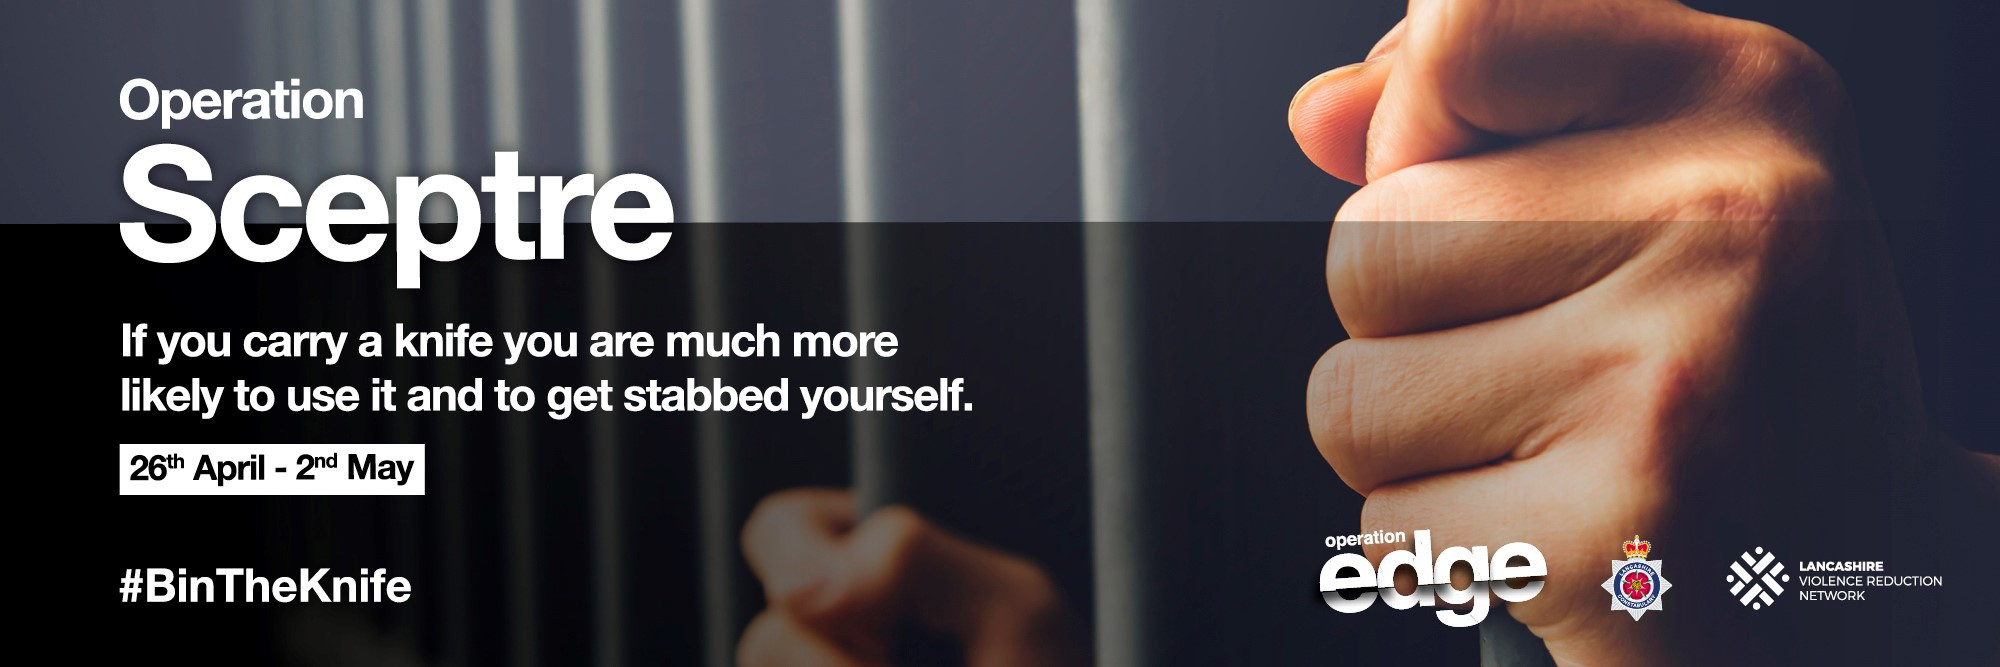 Operation Sceptre. If you carry a knife you are much more likely to use it and get stabbed yourself. 26th April - 2nd May 2021. #BinTheKnife